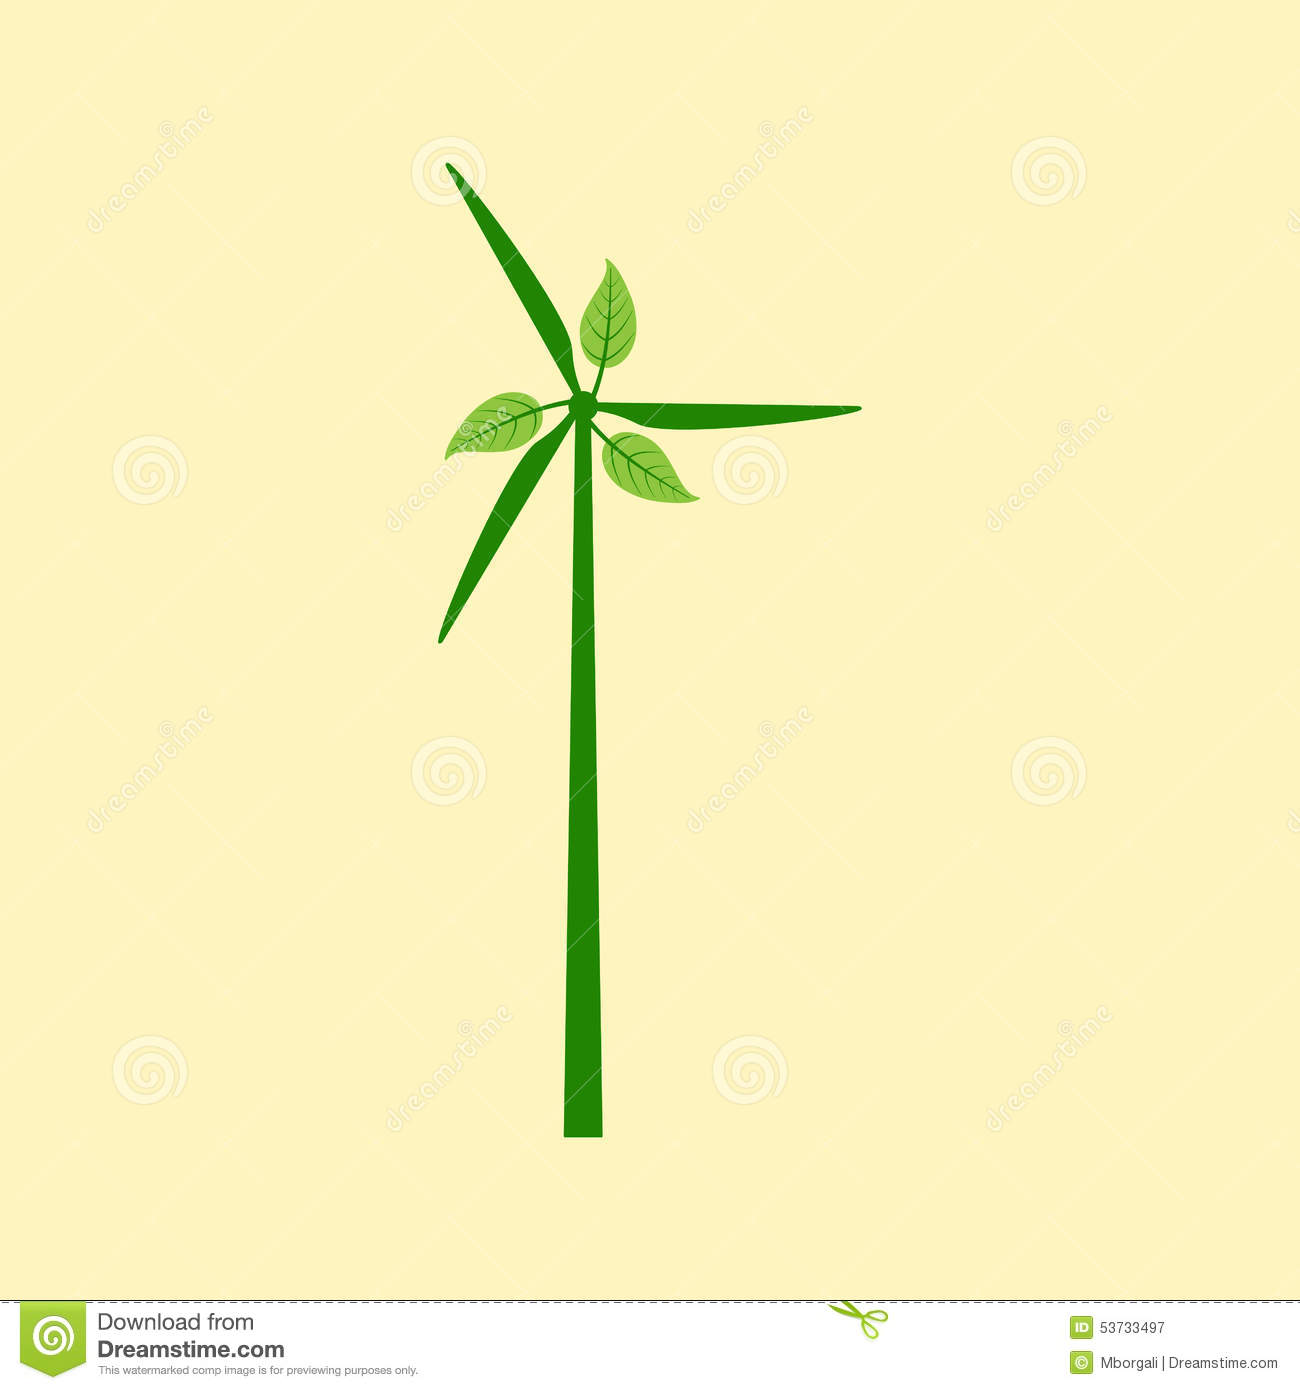 windmill with leaves stock vector illustration of design 53733497